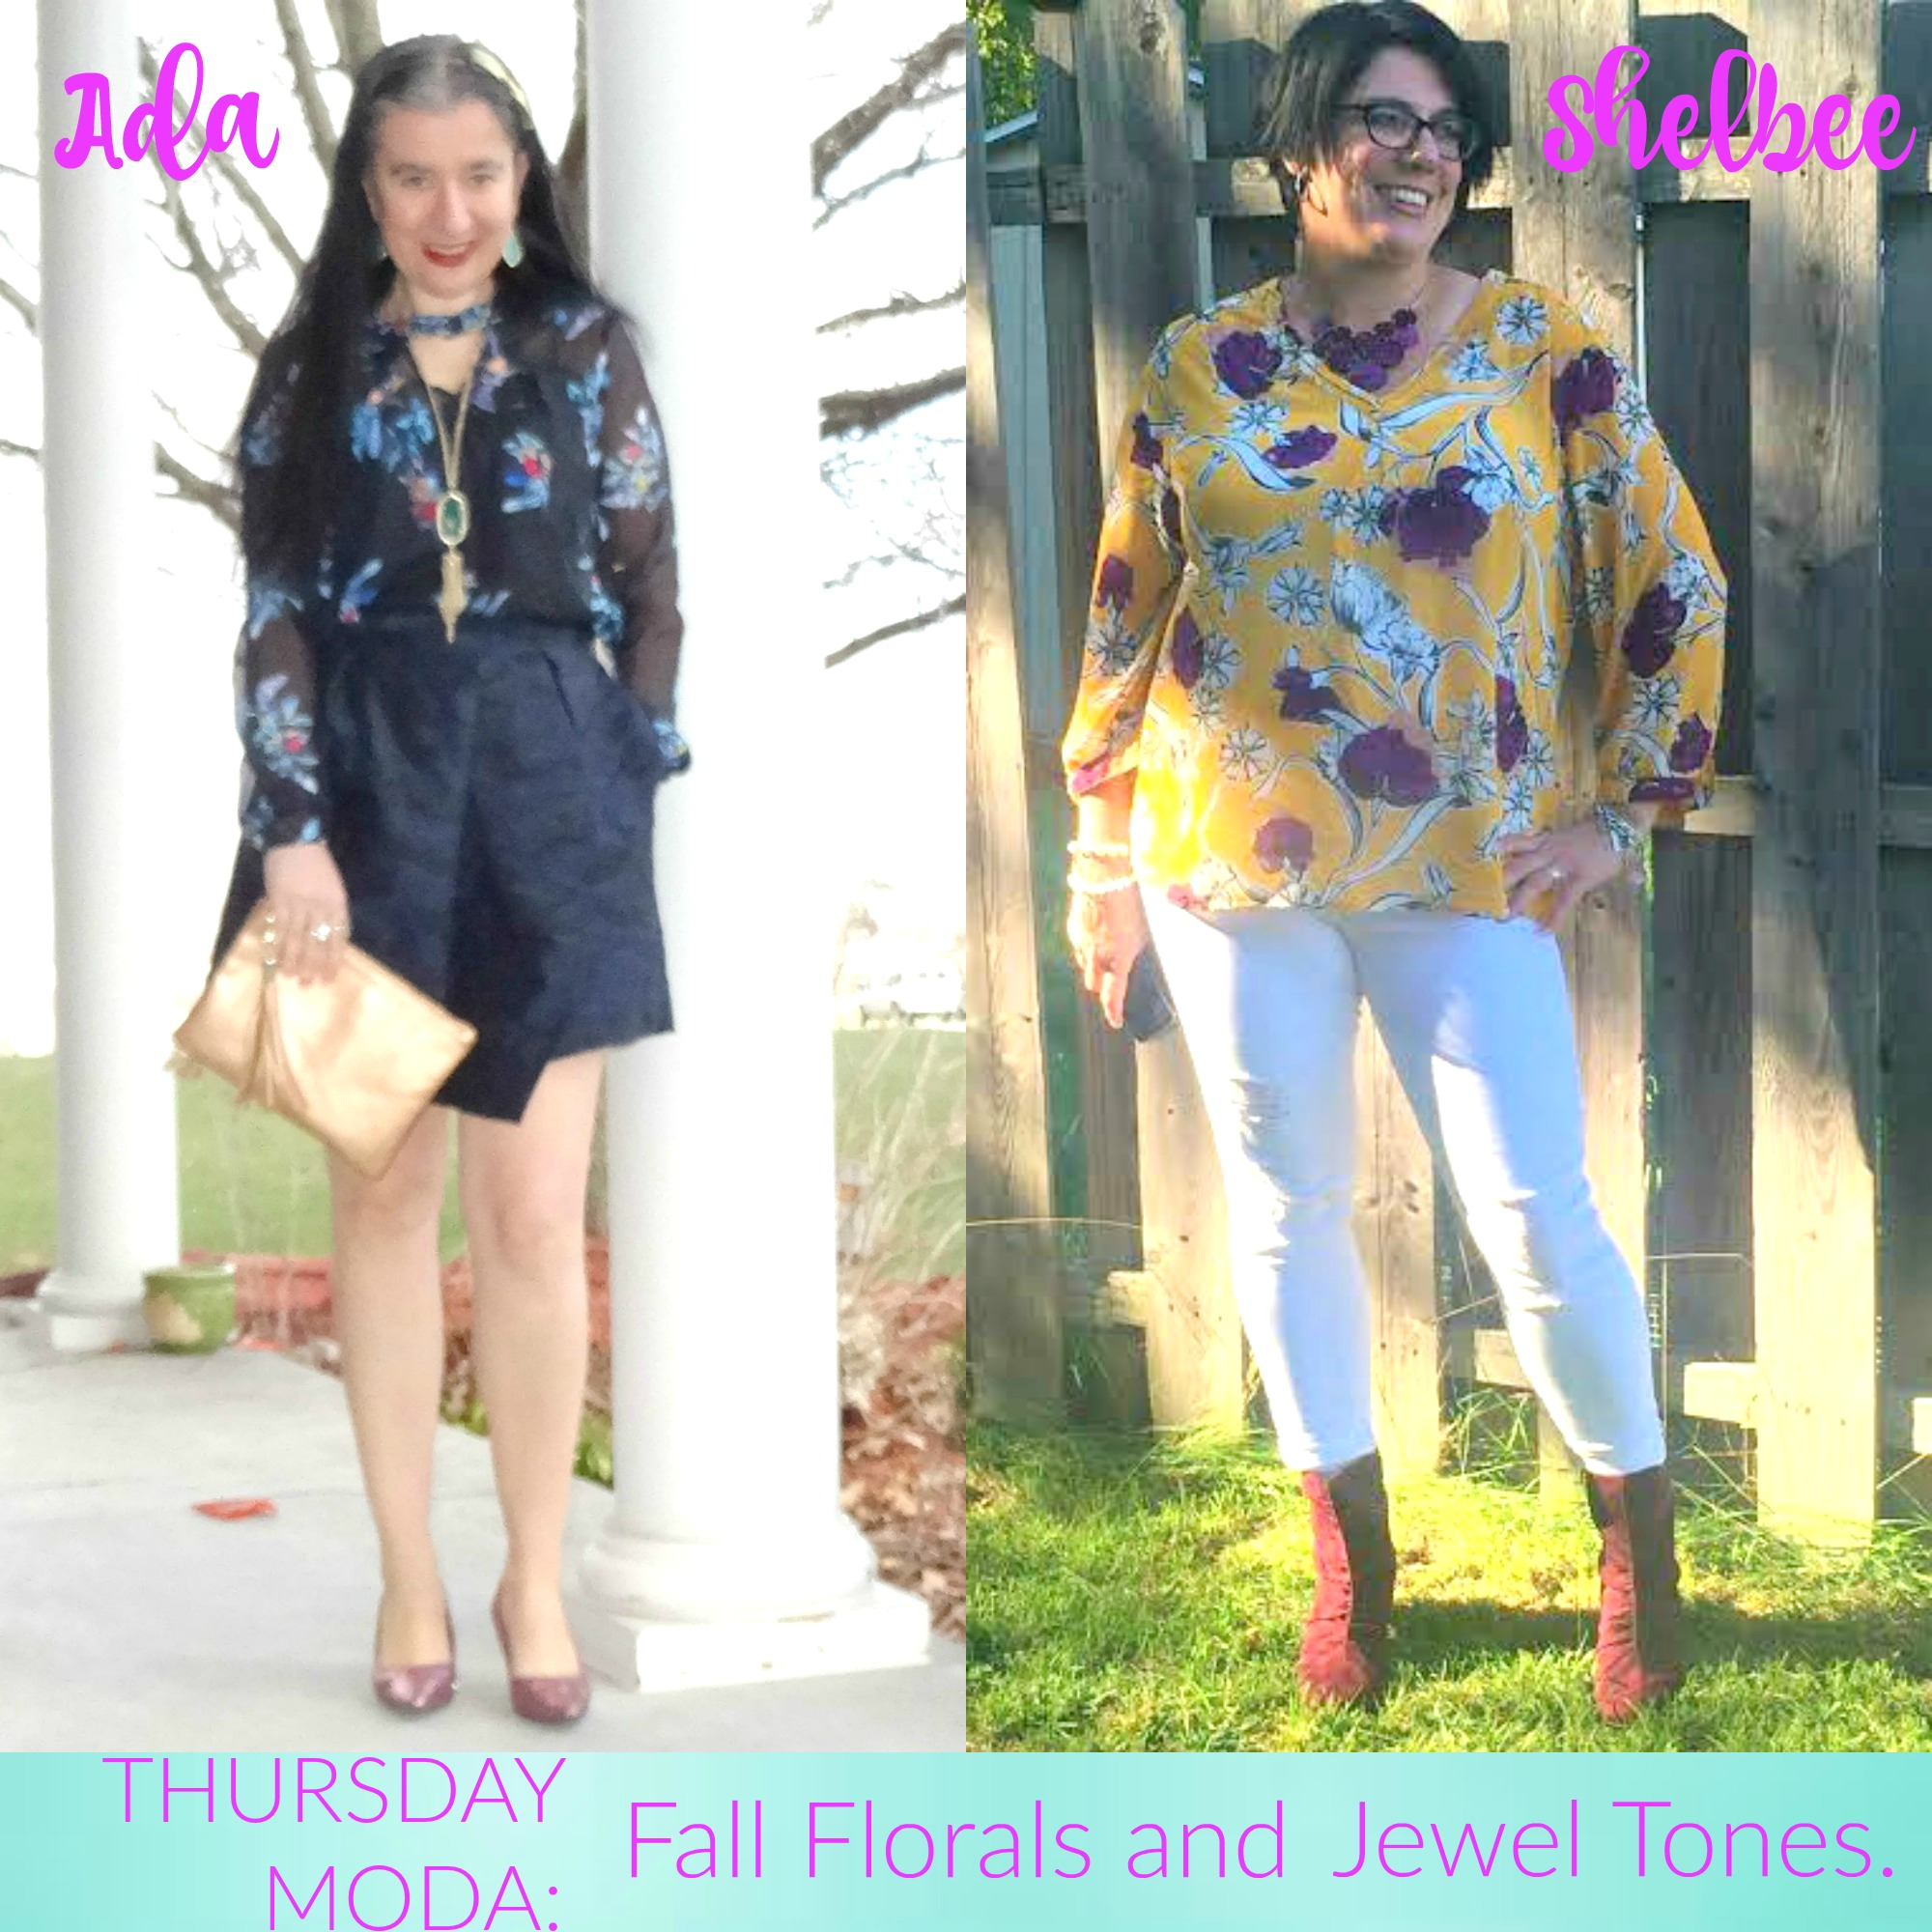 Fall Florals, Jewel Tones, and Thursday Moda Link Up